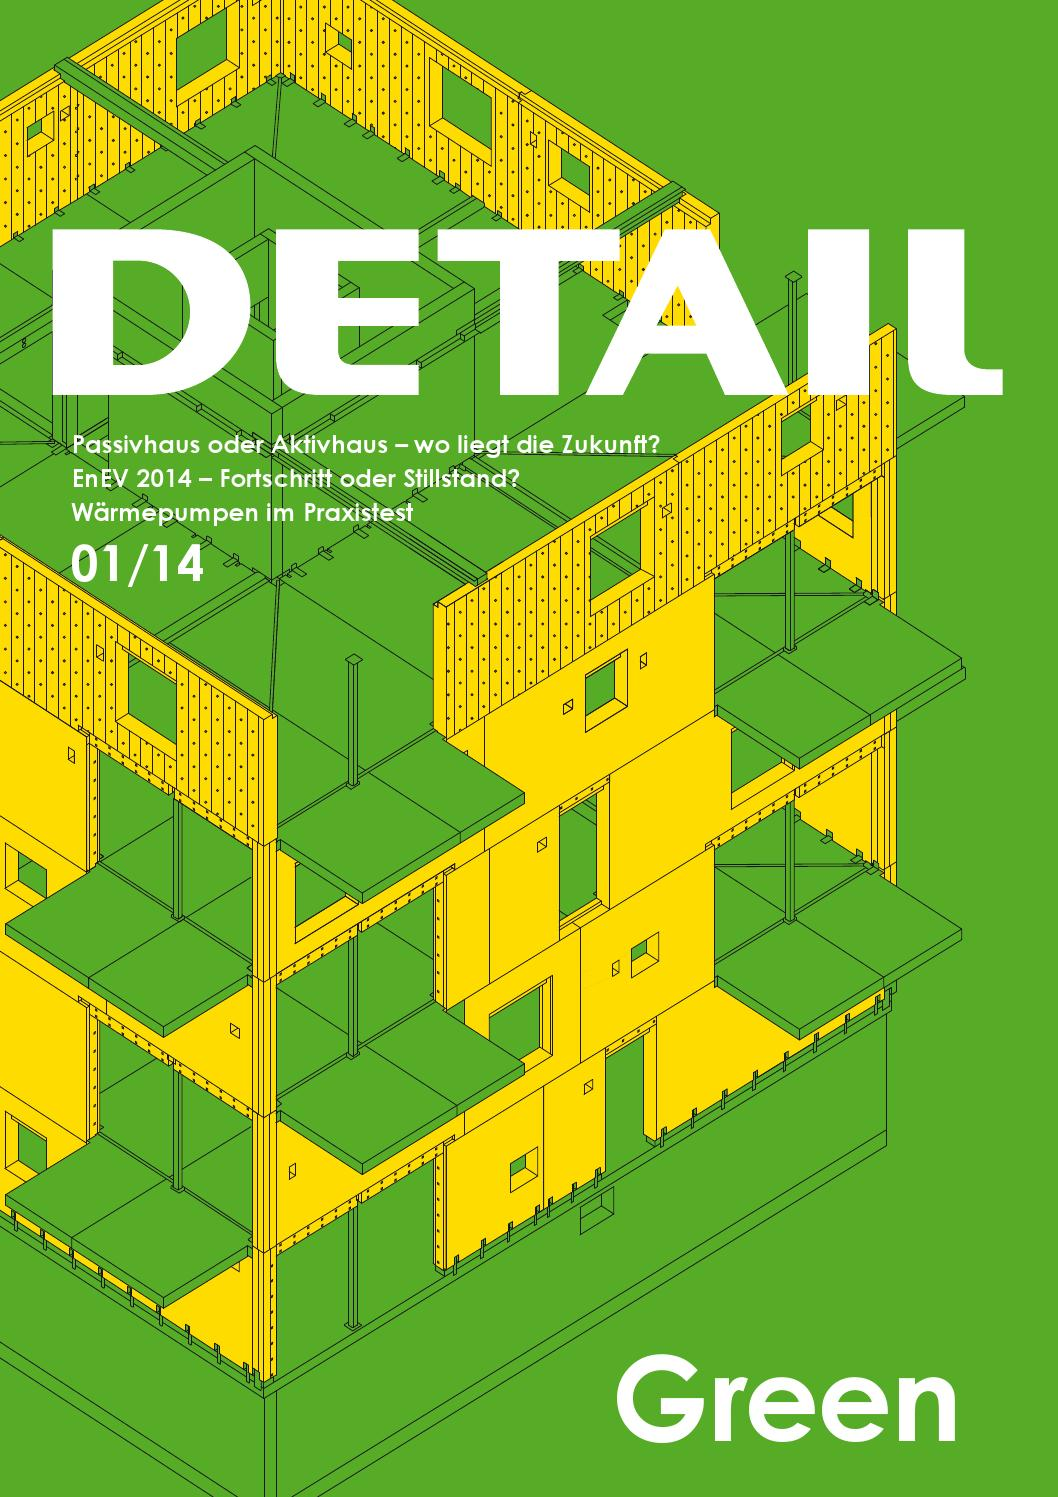 DETAIL Green Mai 2014 by DETAIL - issuu